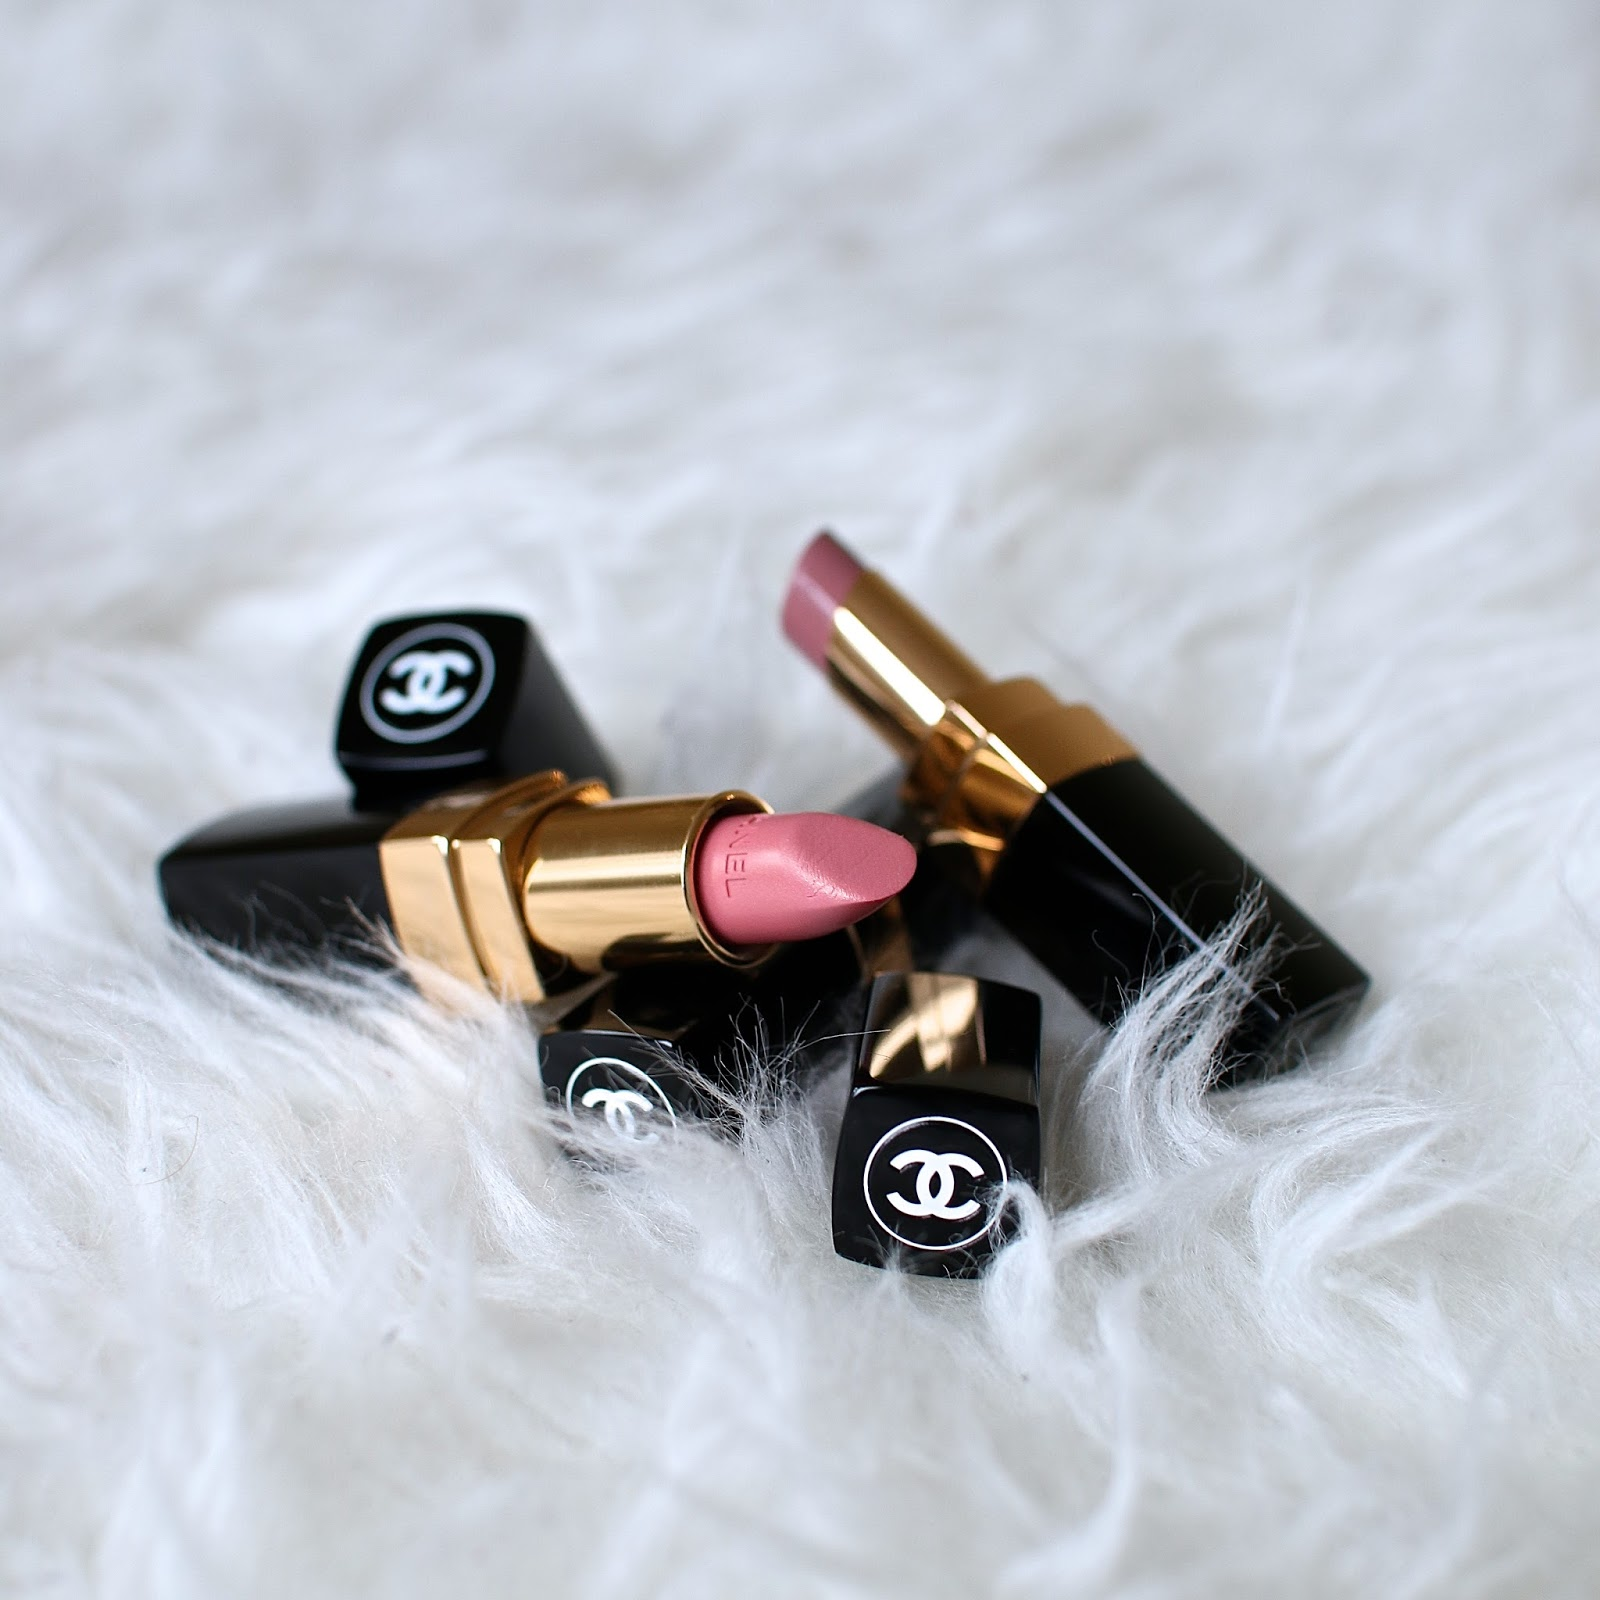 chanel lipstick review